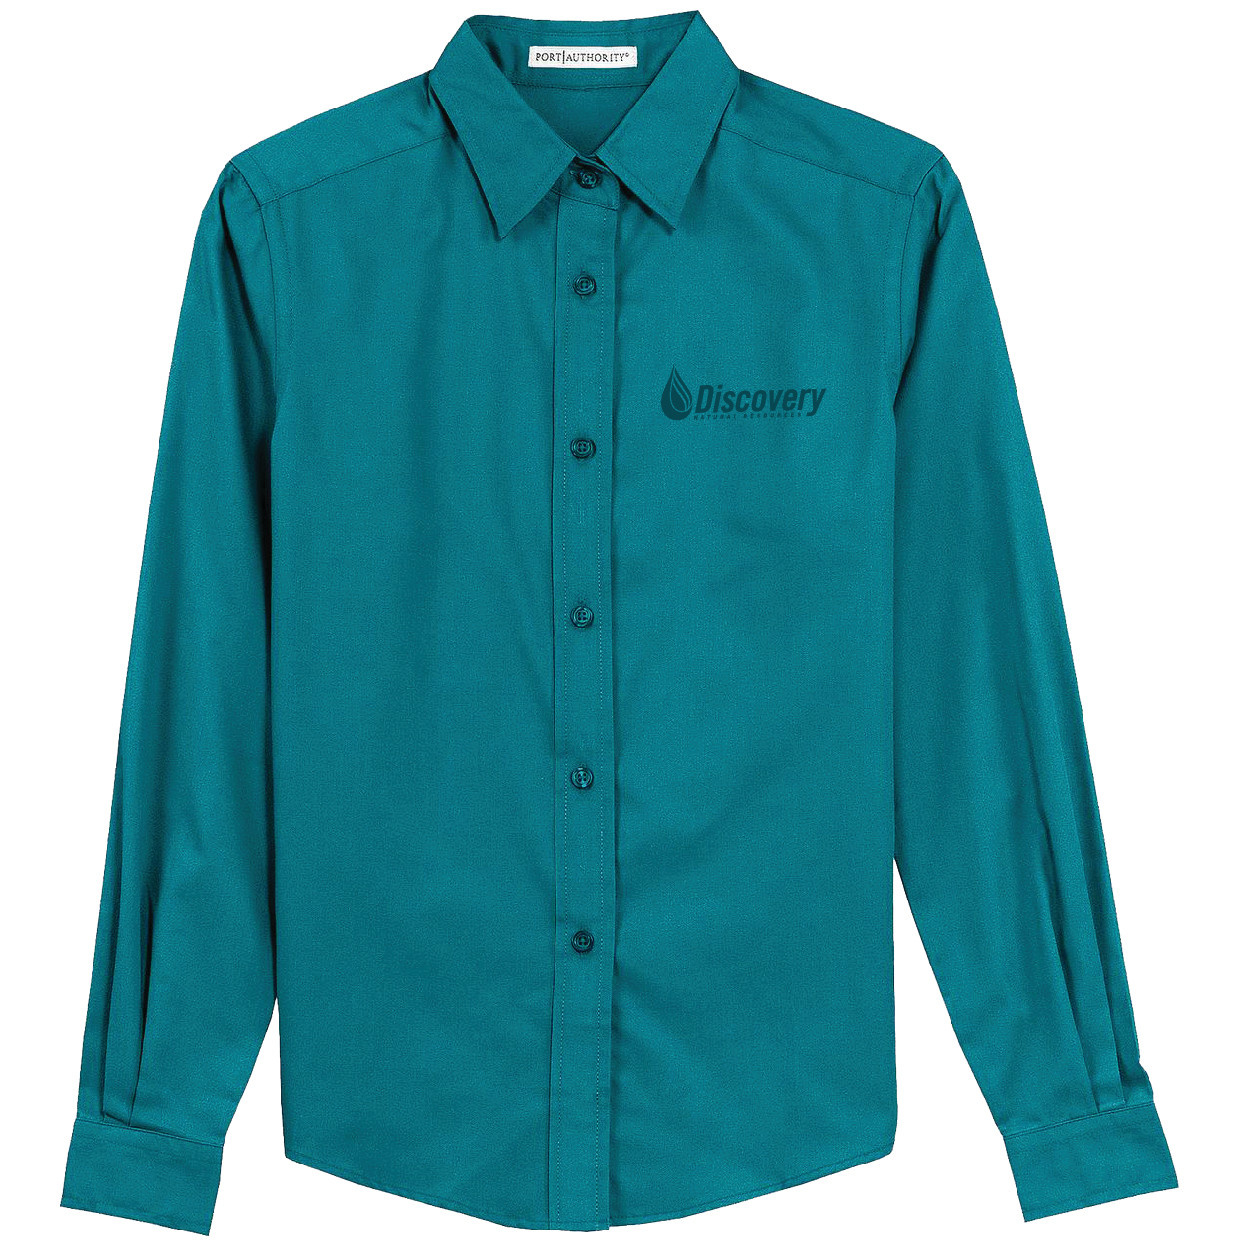 Port Authority Port Authority Ladies Long Sleeve Easy Care Shirt (Teal Green)